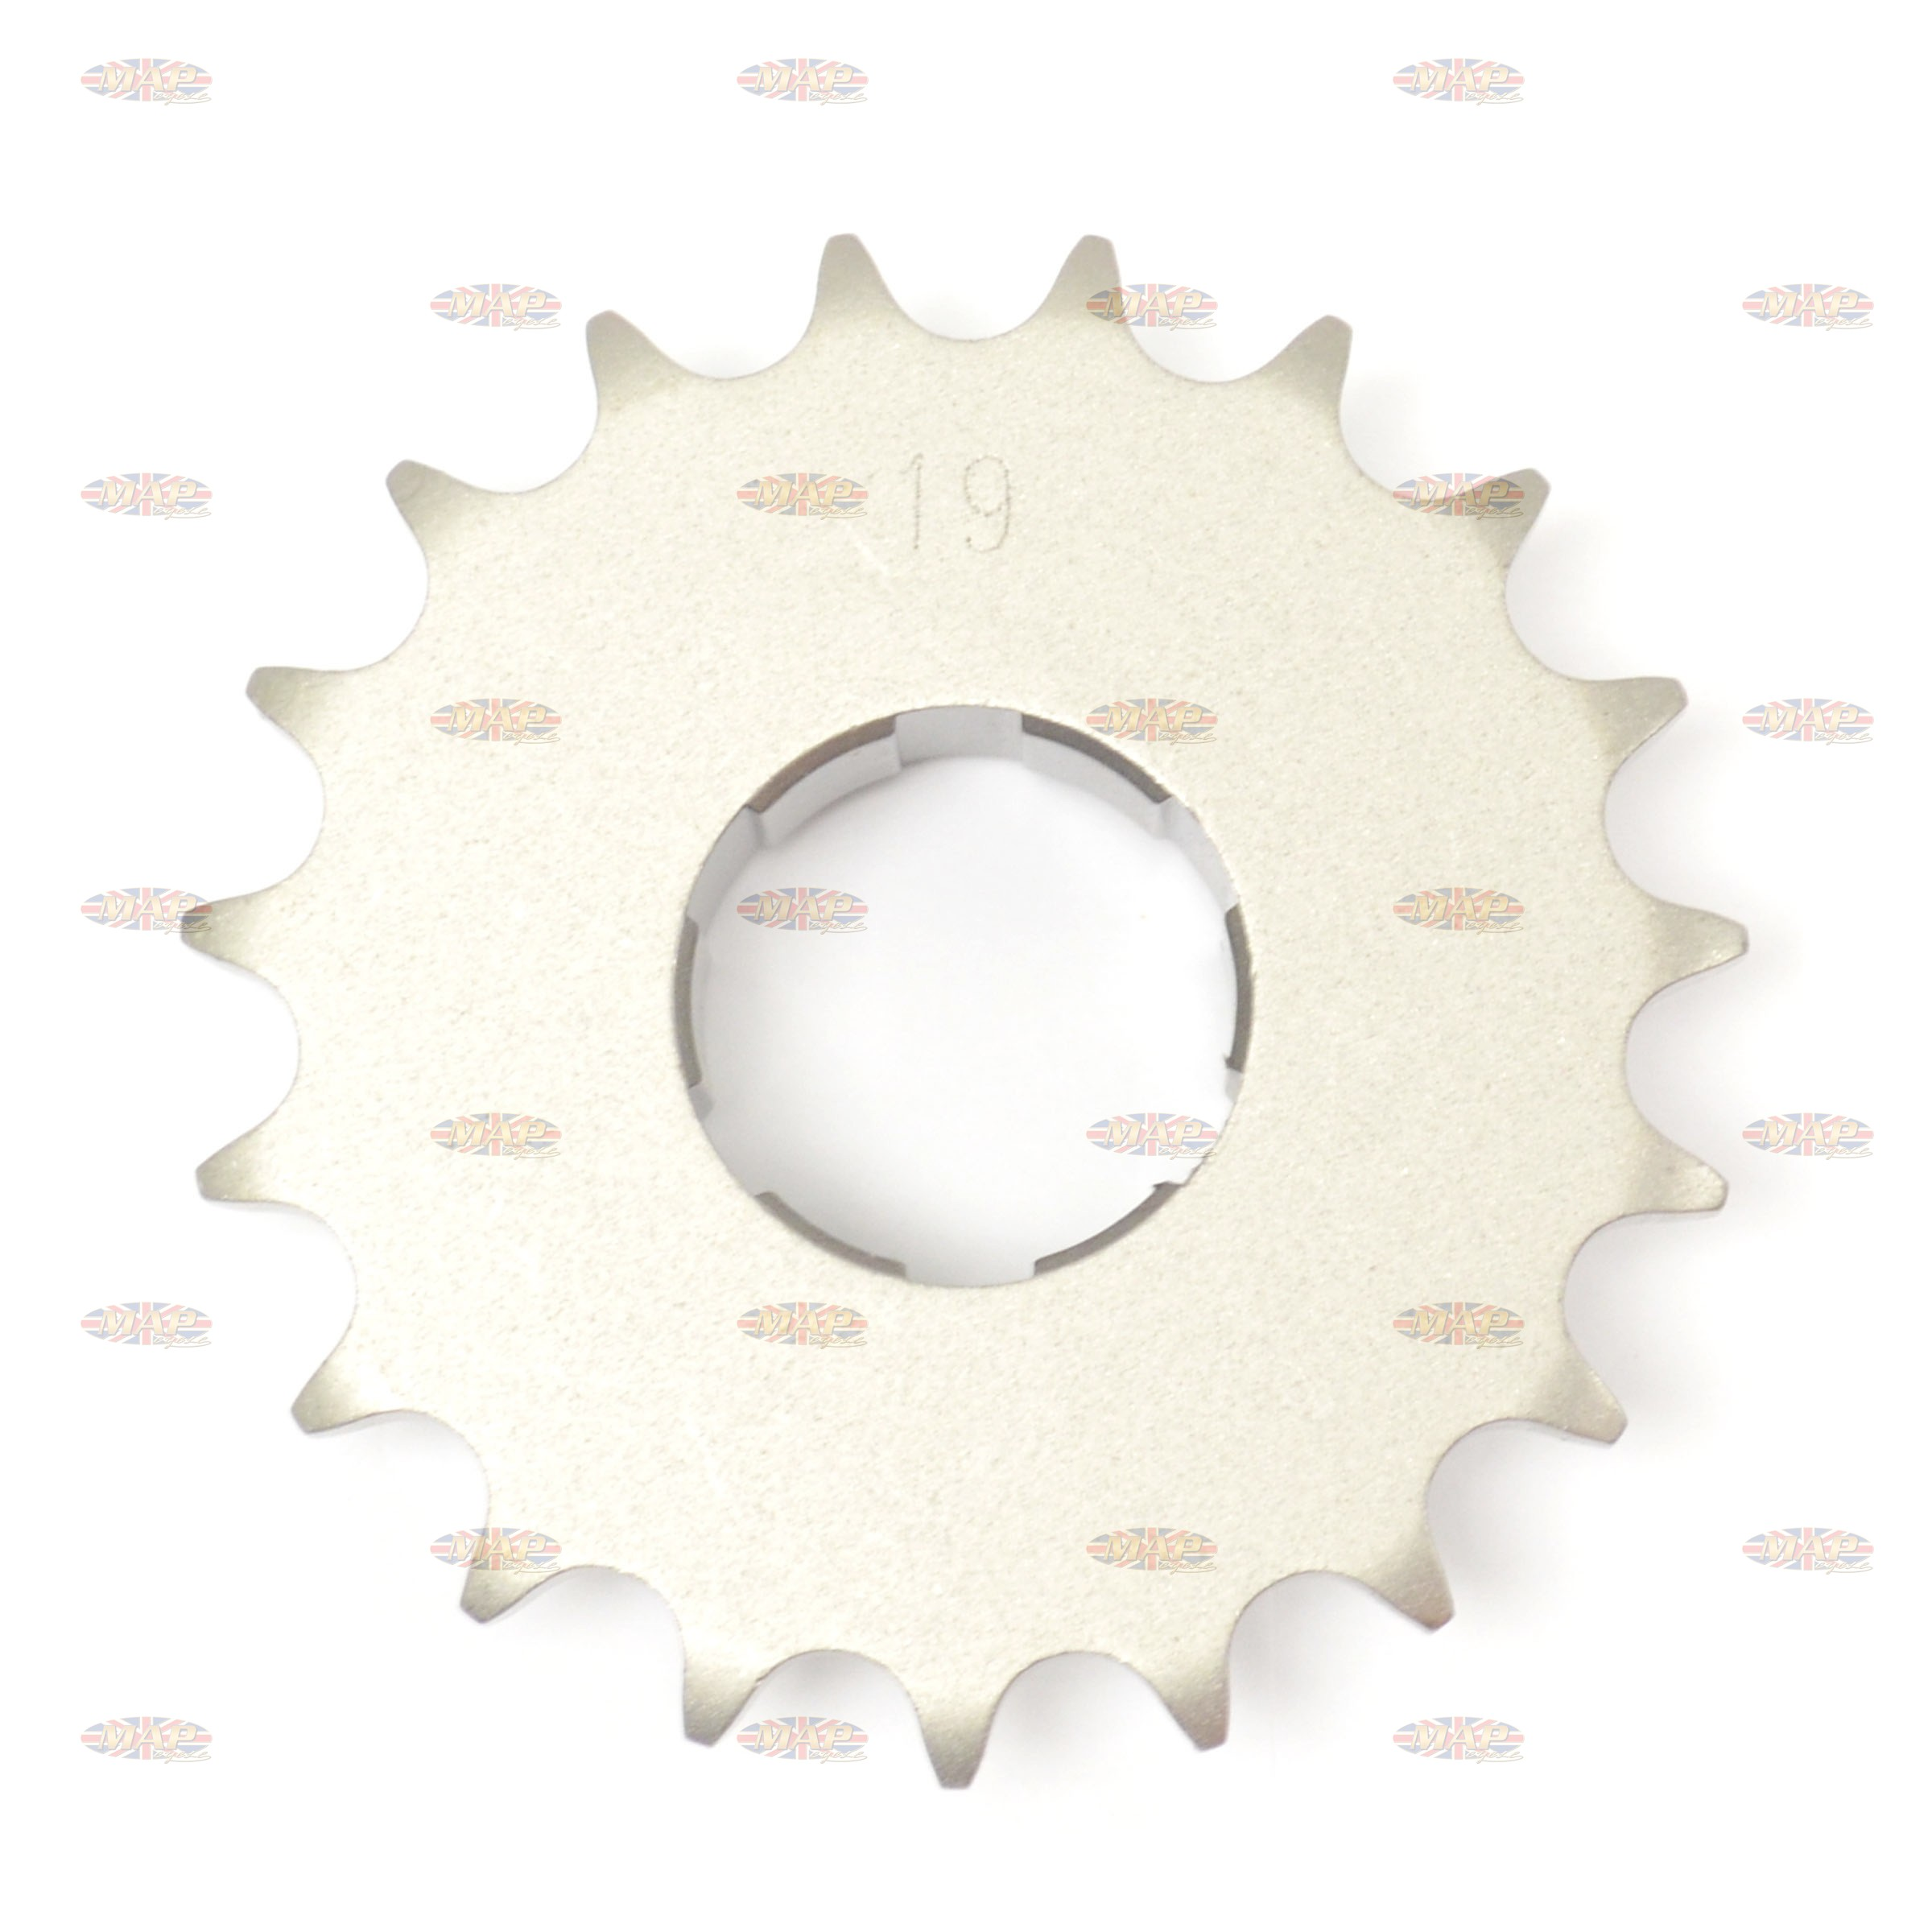 BSA C15 B40 Trials Gearbox Sprocket 19T Tooth  40-3123/E